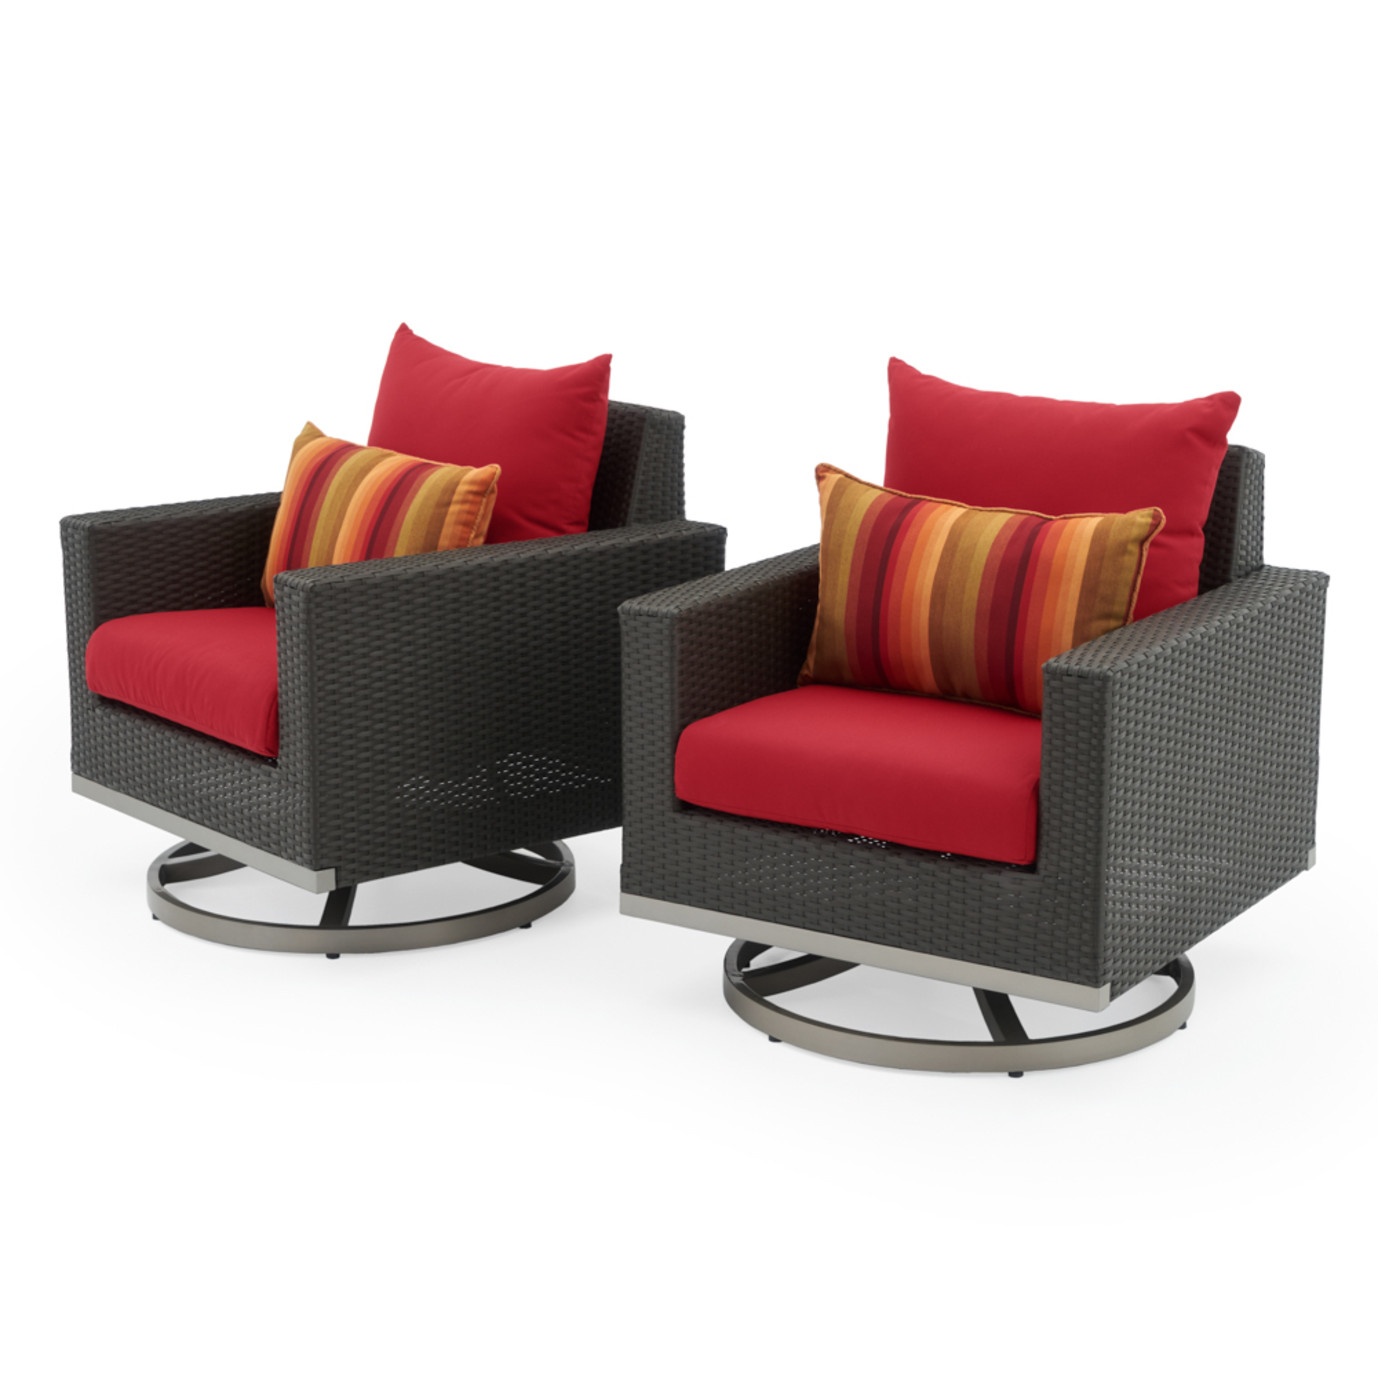 Milo™ Espresso Motion Club Chairs - Sunset Red